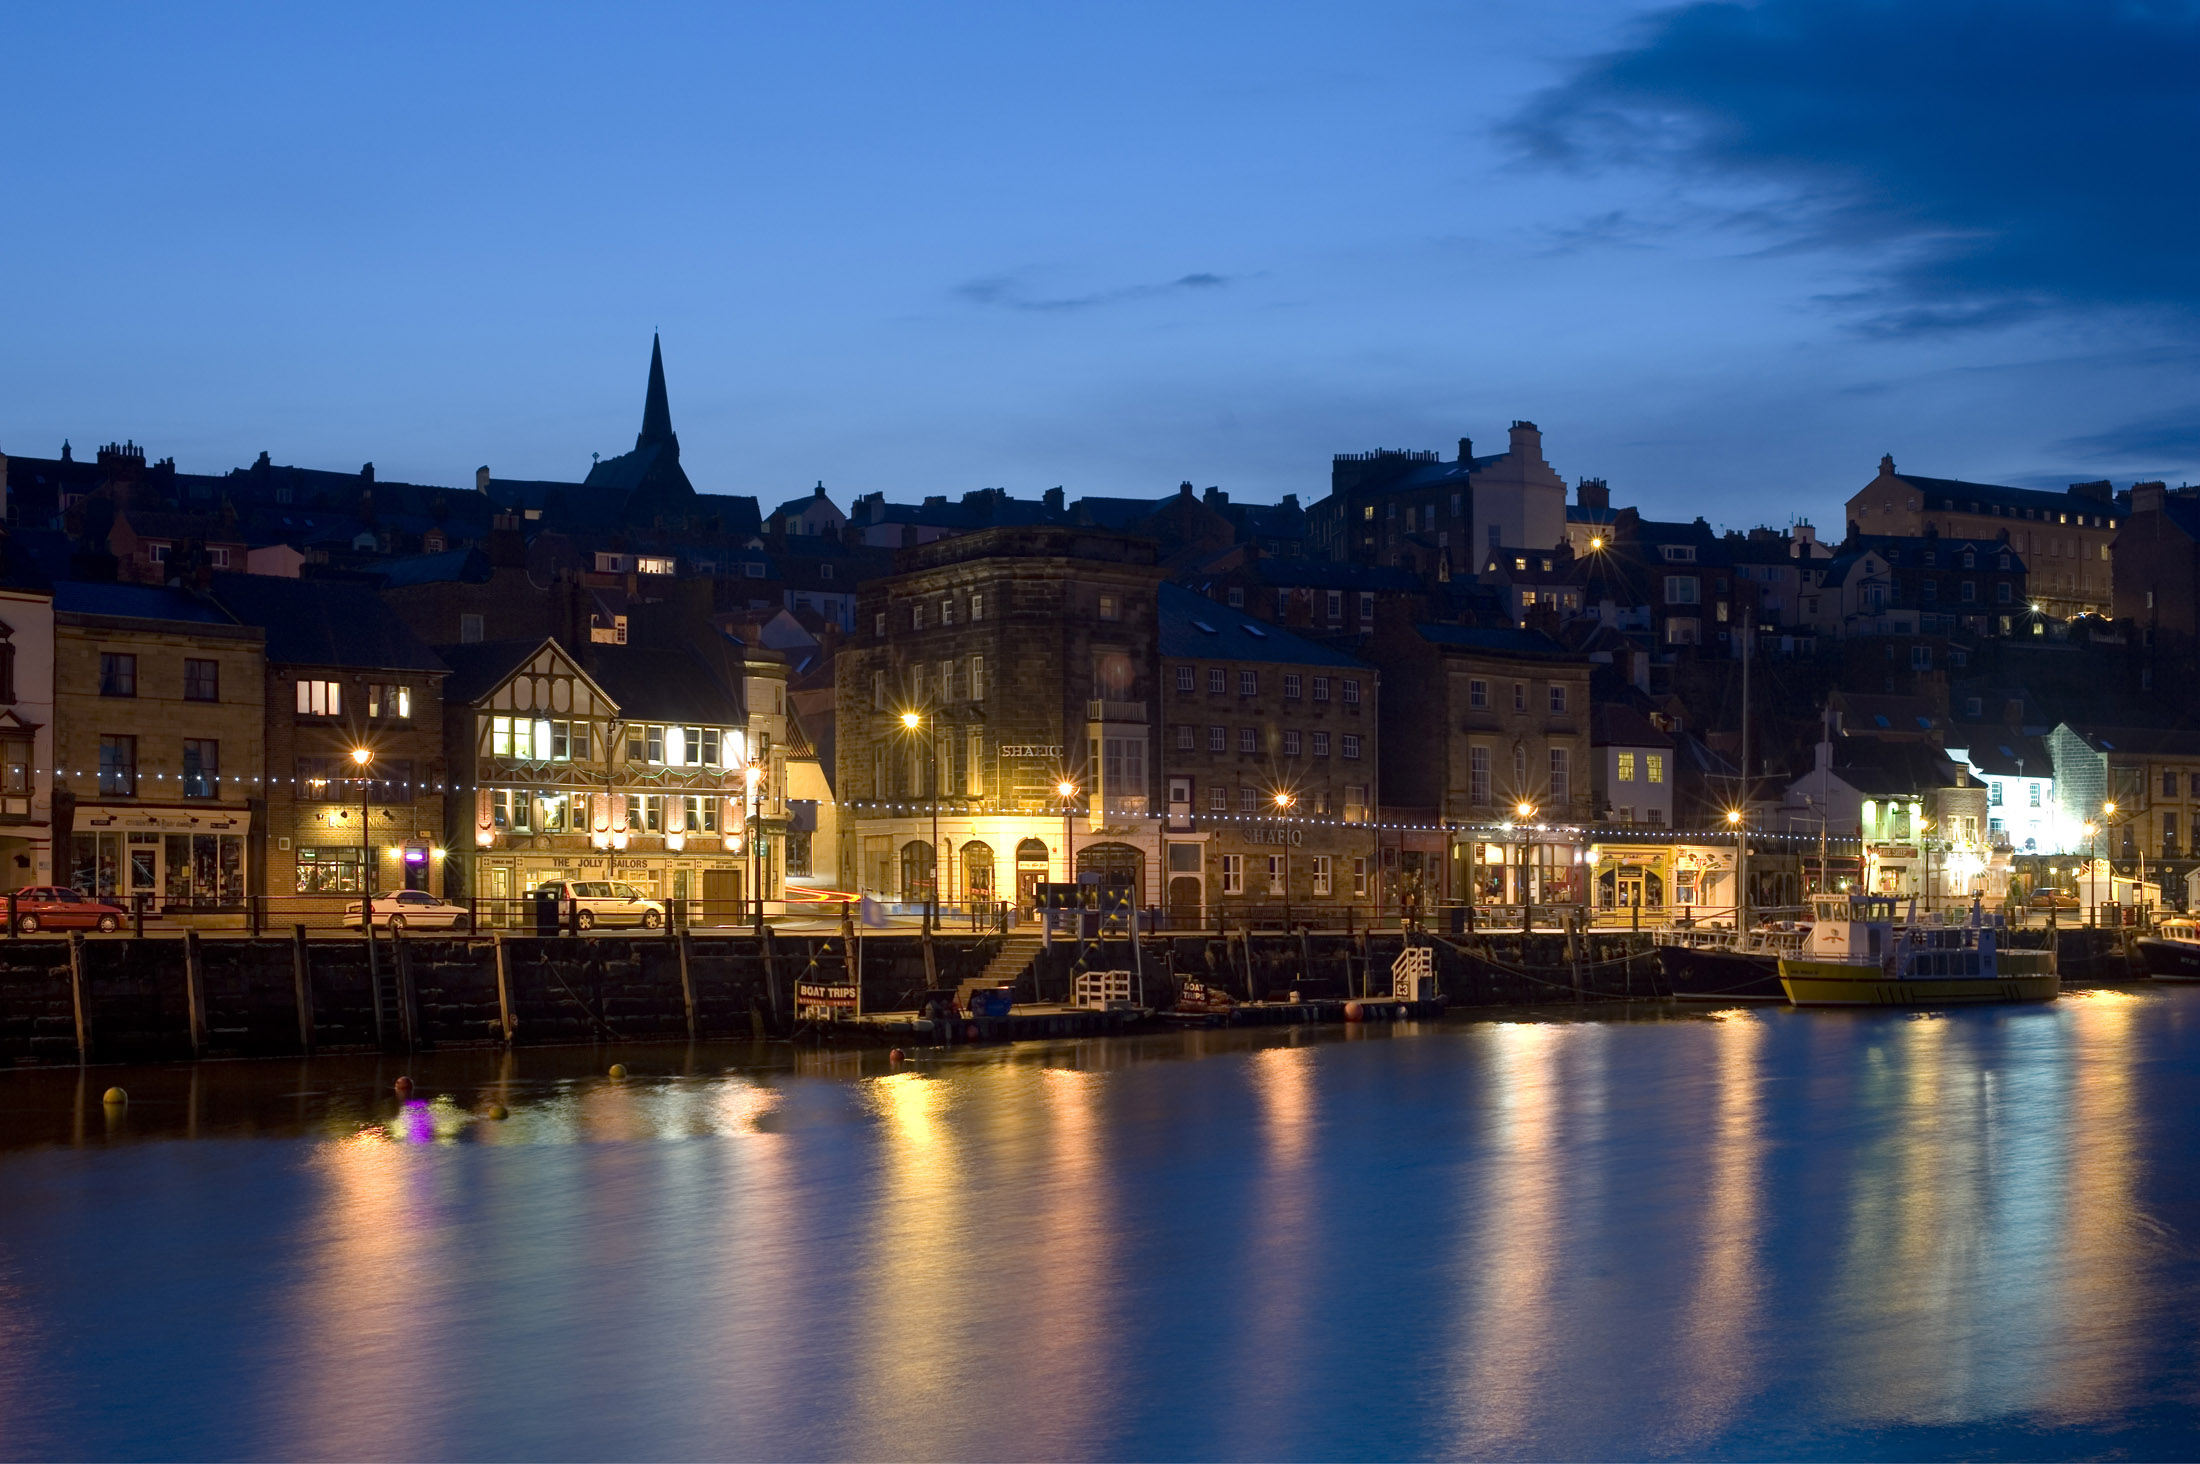 a view of st annes staith whitby, lit up at light